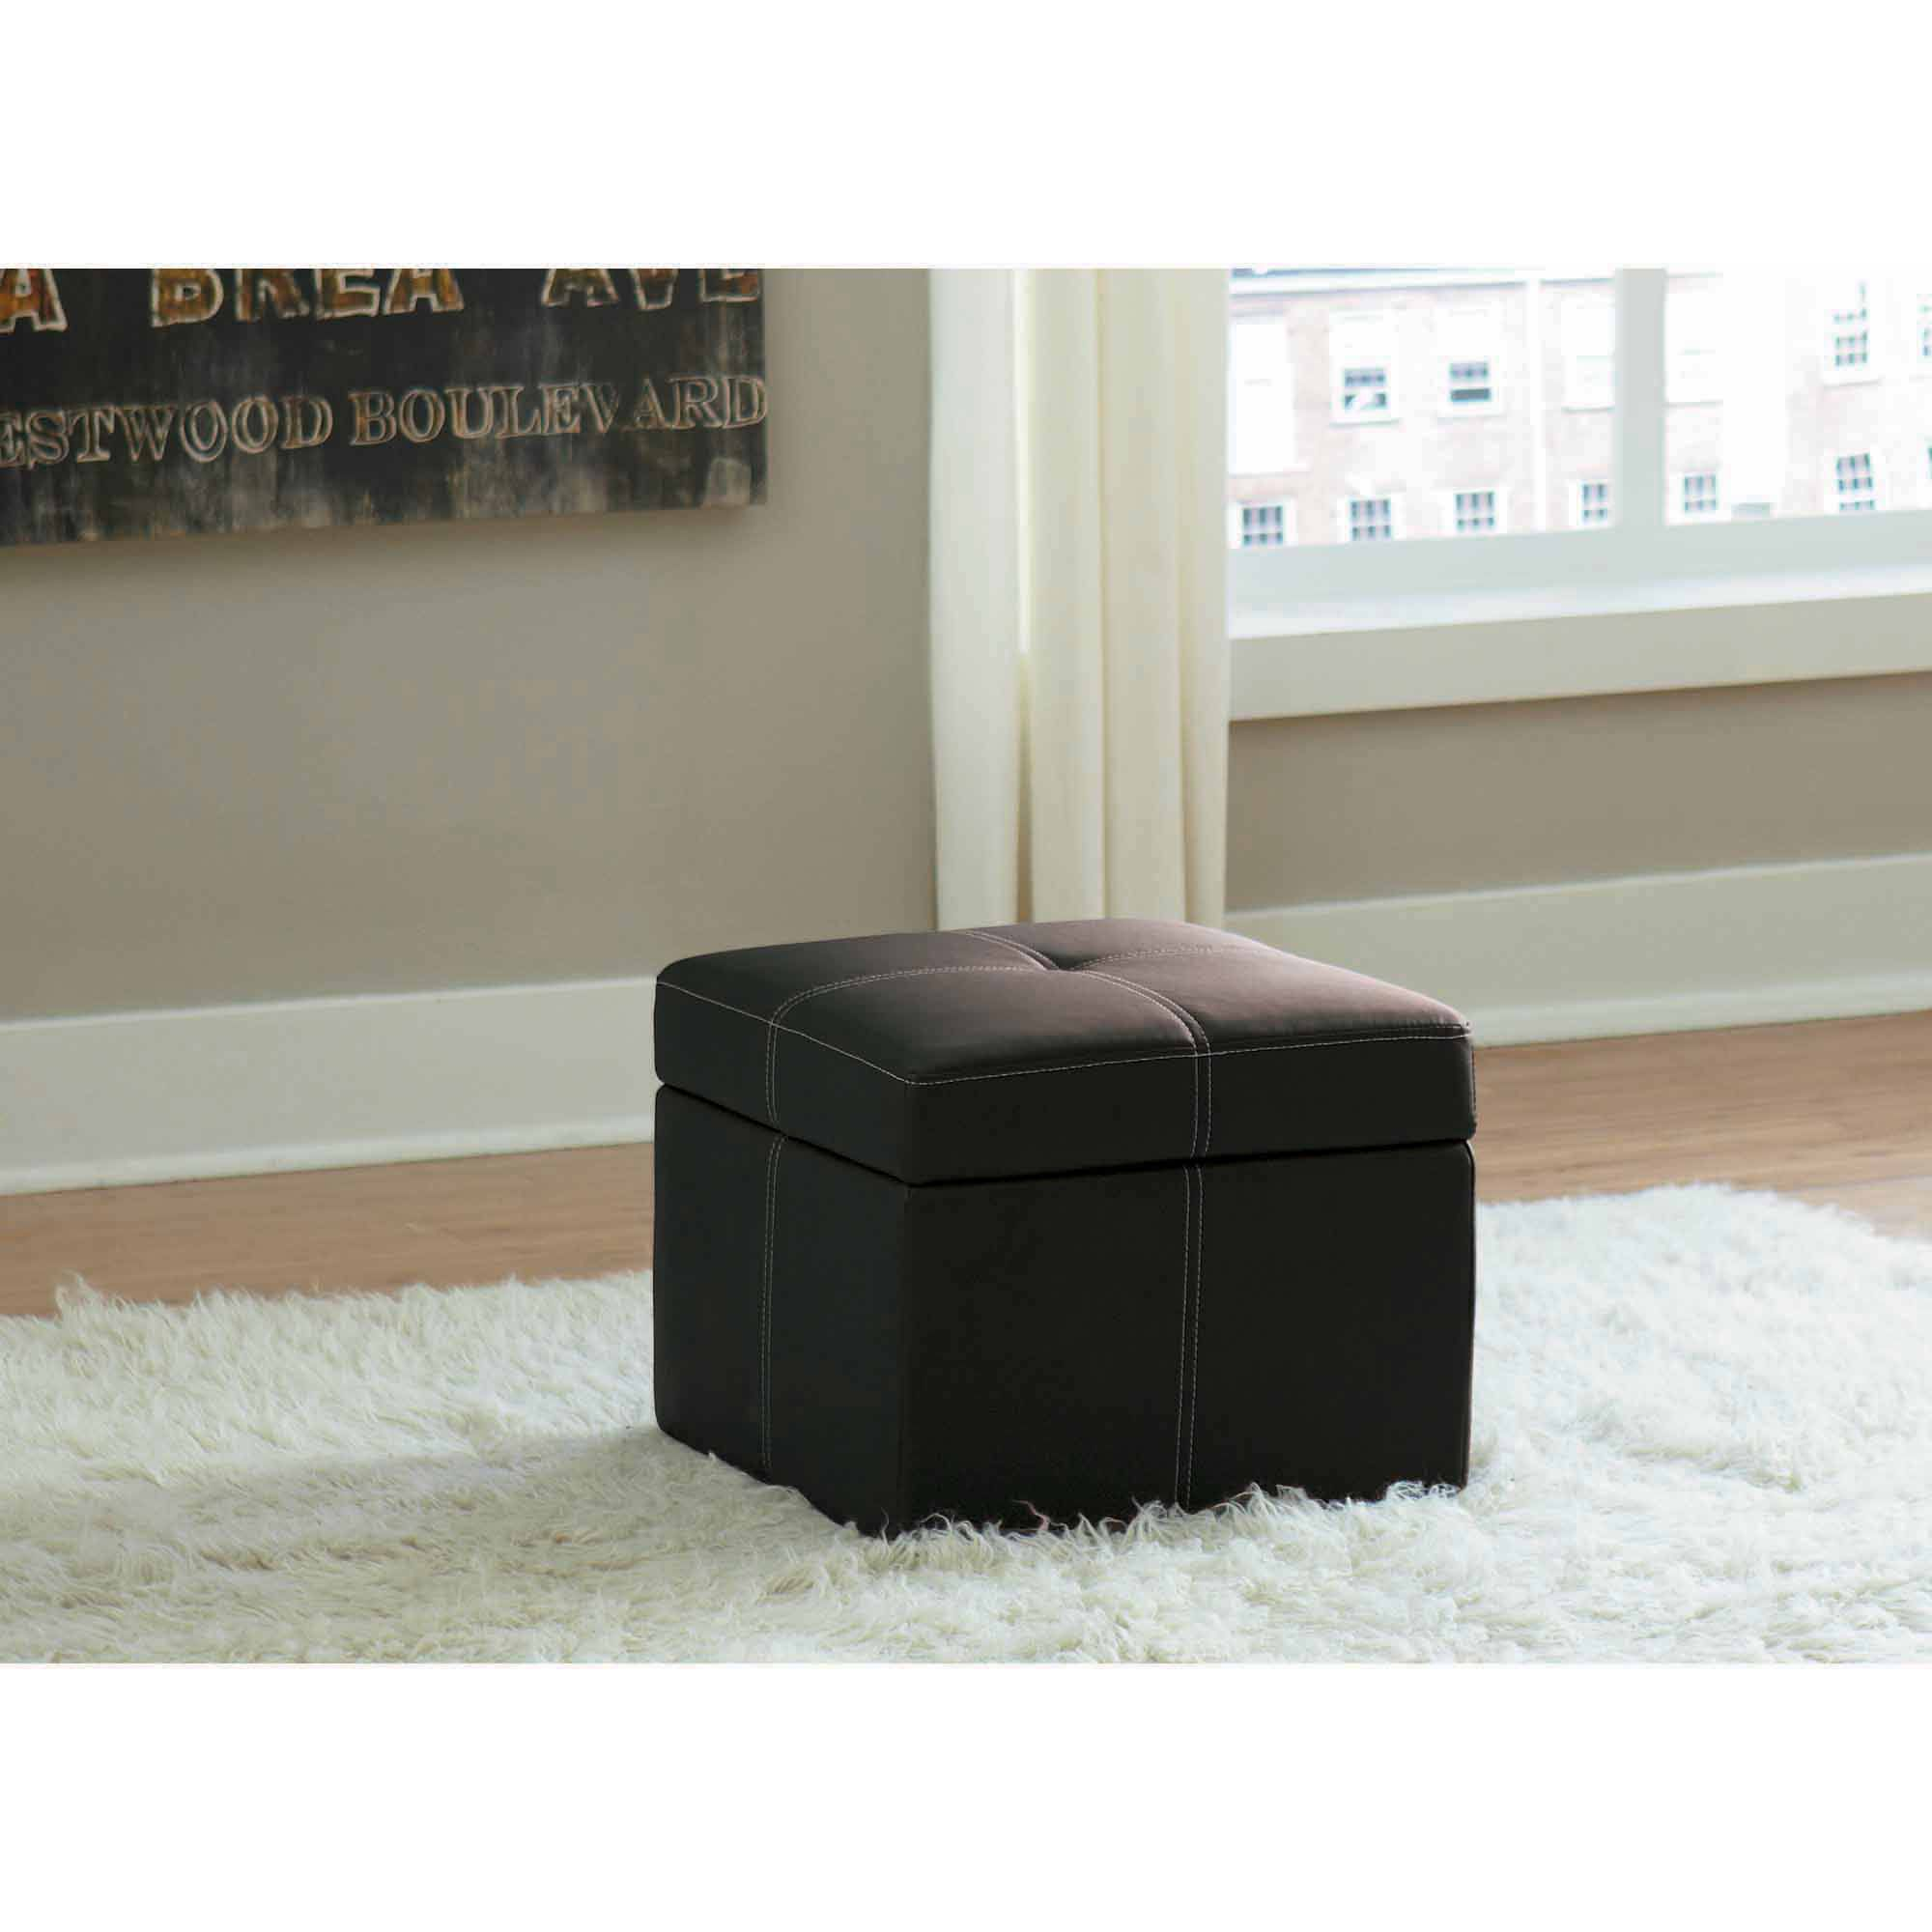 Nice The Delaney Square Storage Ottoman Comes In Square Shape To Embrace Both  Functionality And Style. The Rich Faux Leather Upholstery Of This Storage  Ottoman ...